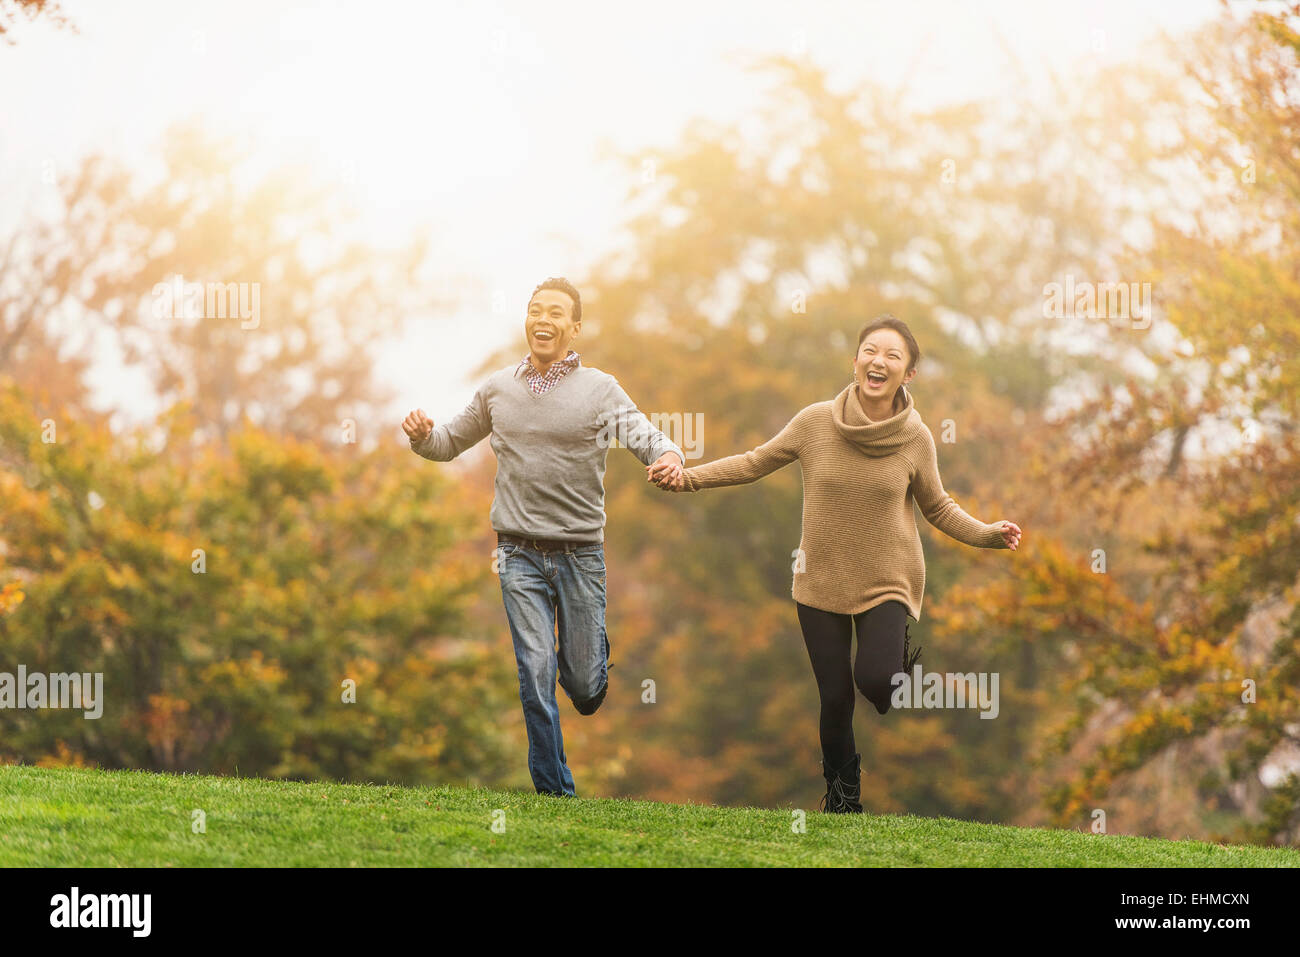 Smiling couple running in park Stock Photo